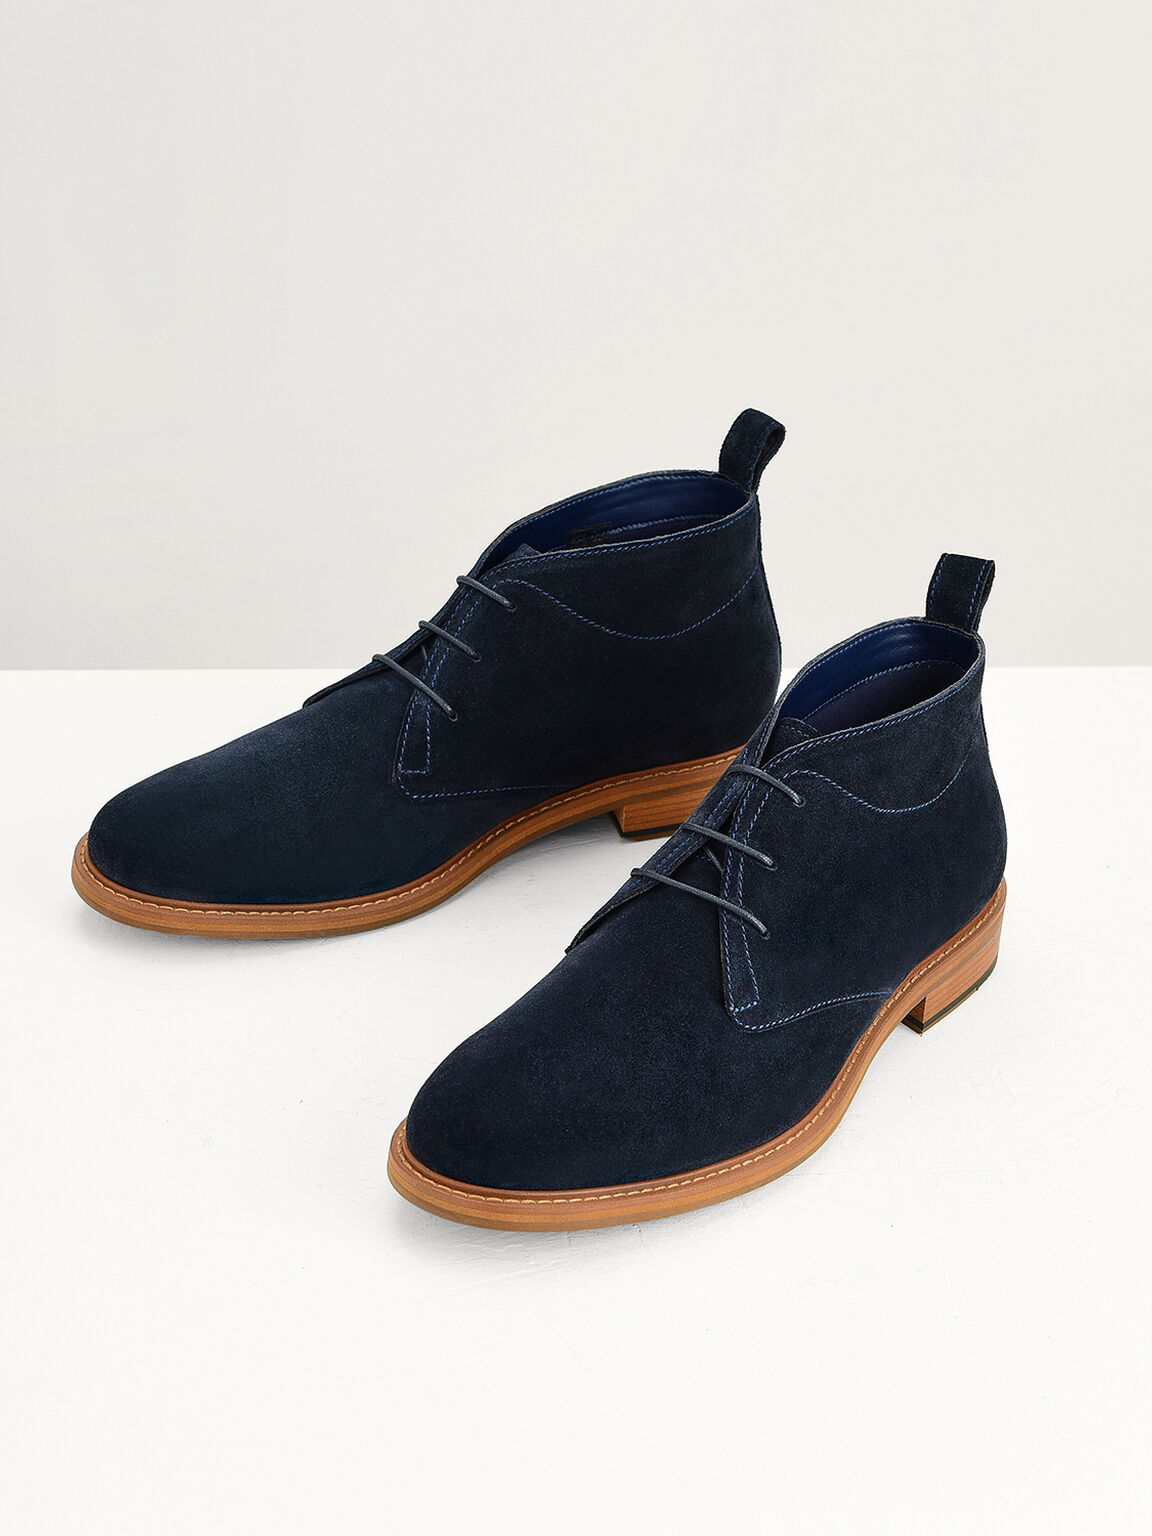 Calf Suede Ankle Boots, Navy, hi-res